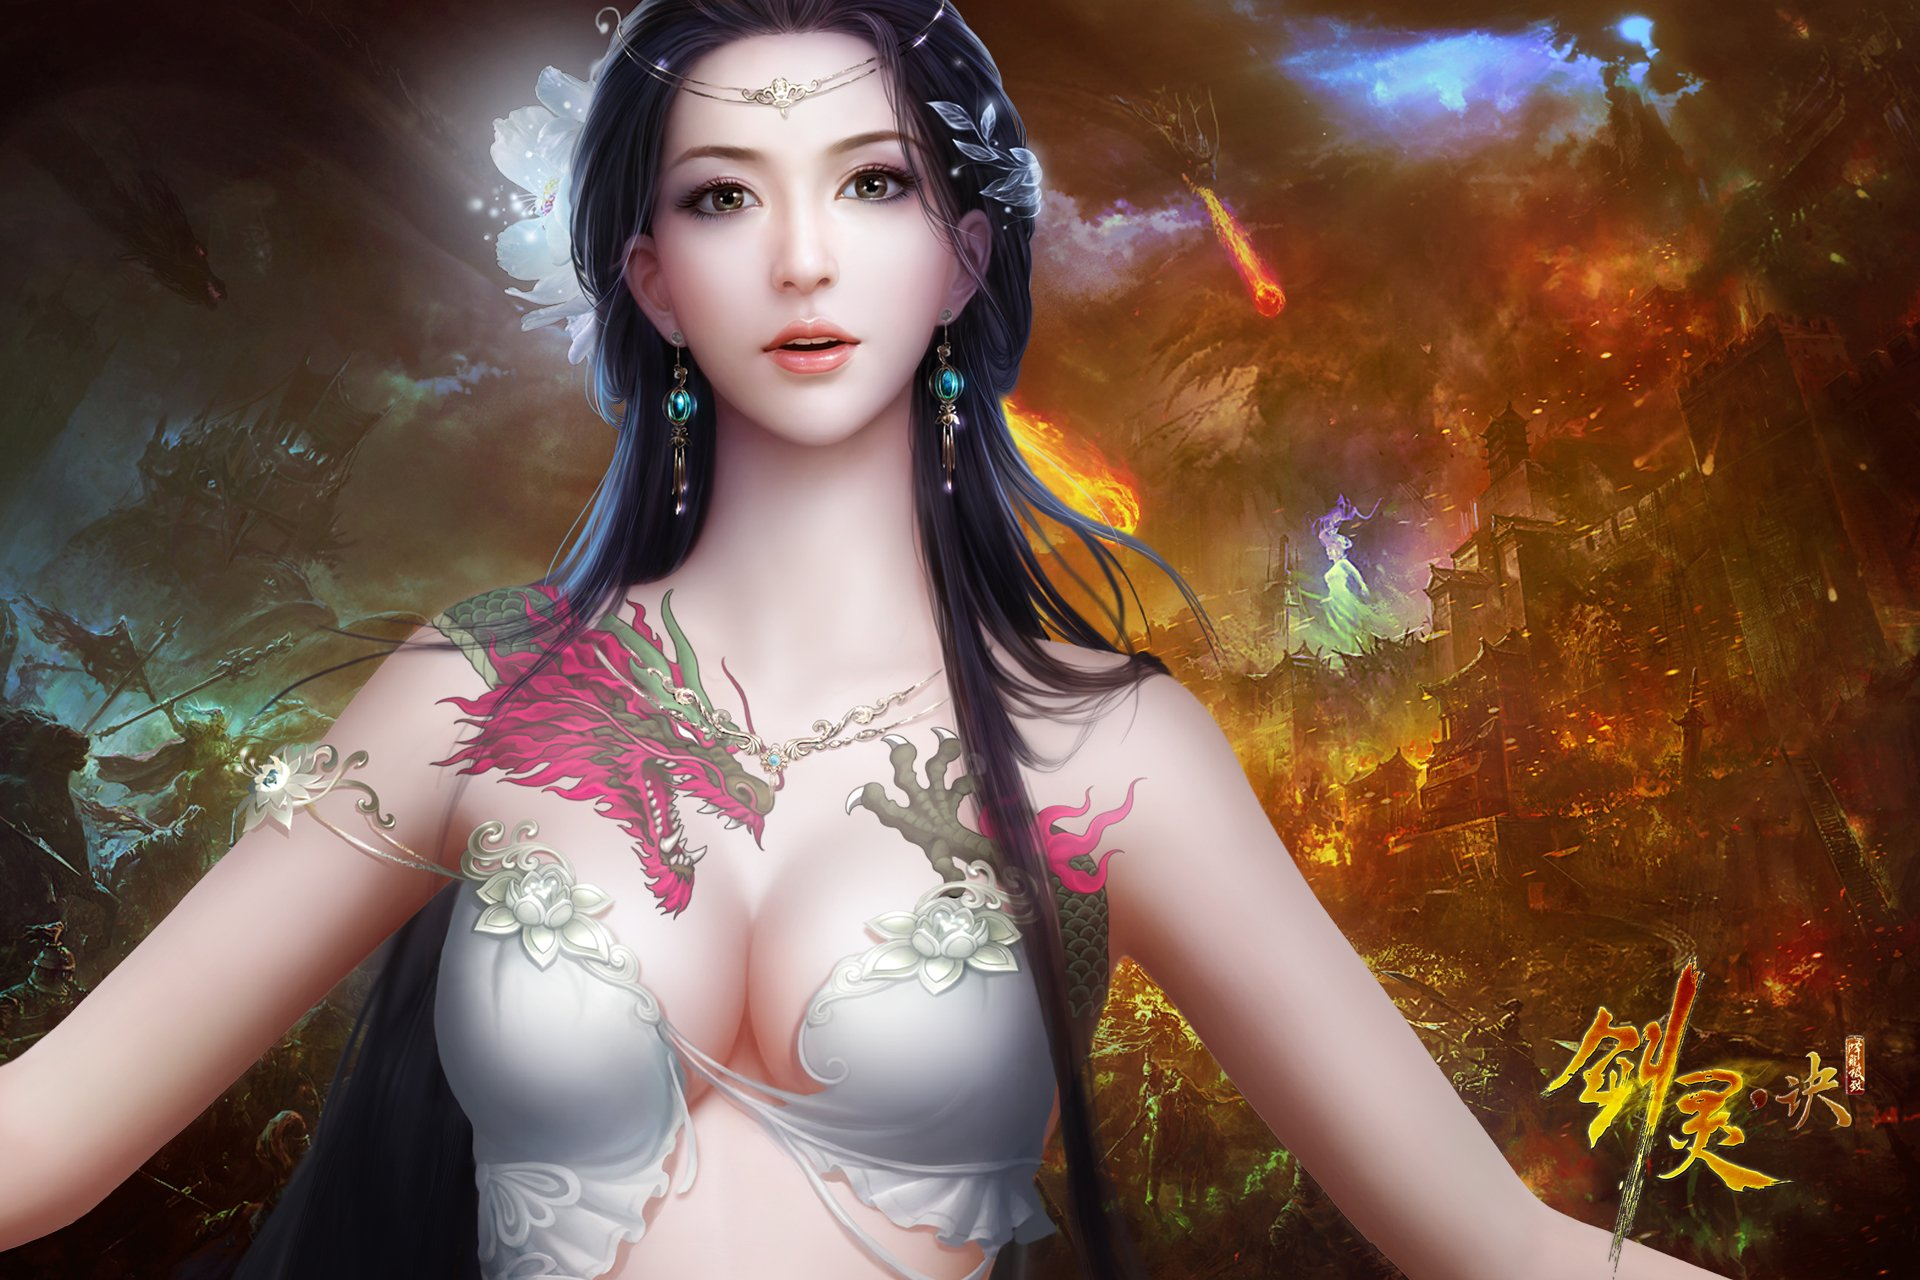 Fantasy Art Women Model Wallpapers Hd Desktop And: Fantasy Girl HD Wallpaper